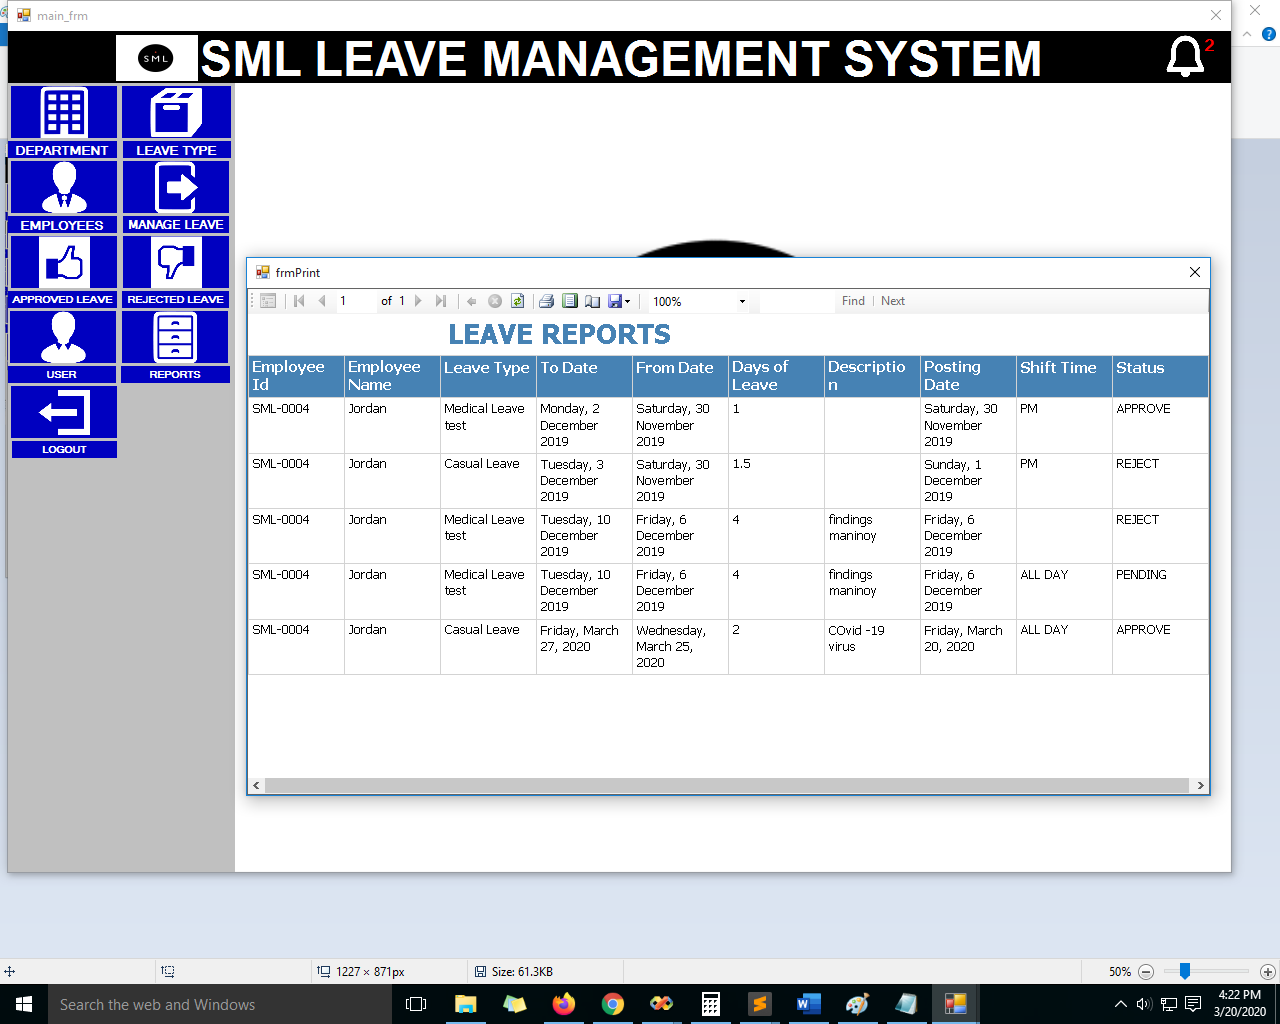 List of Leave Reports